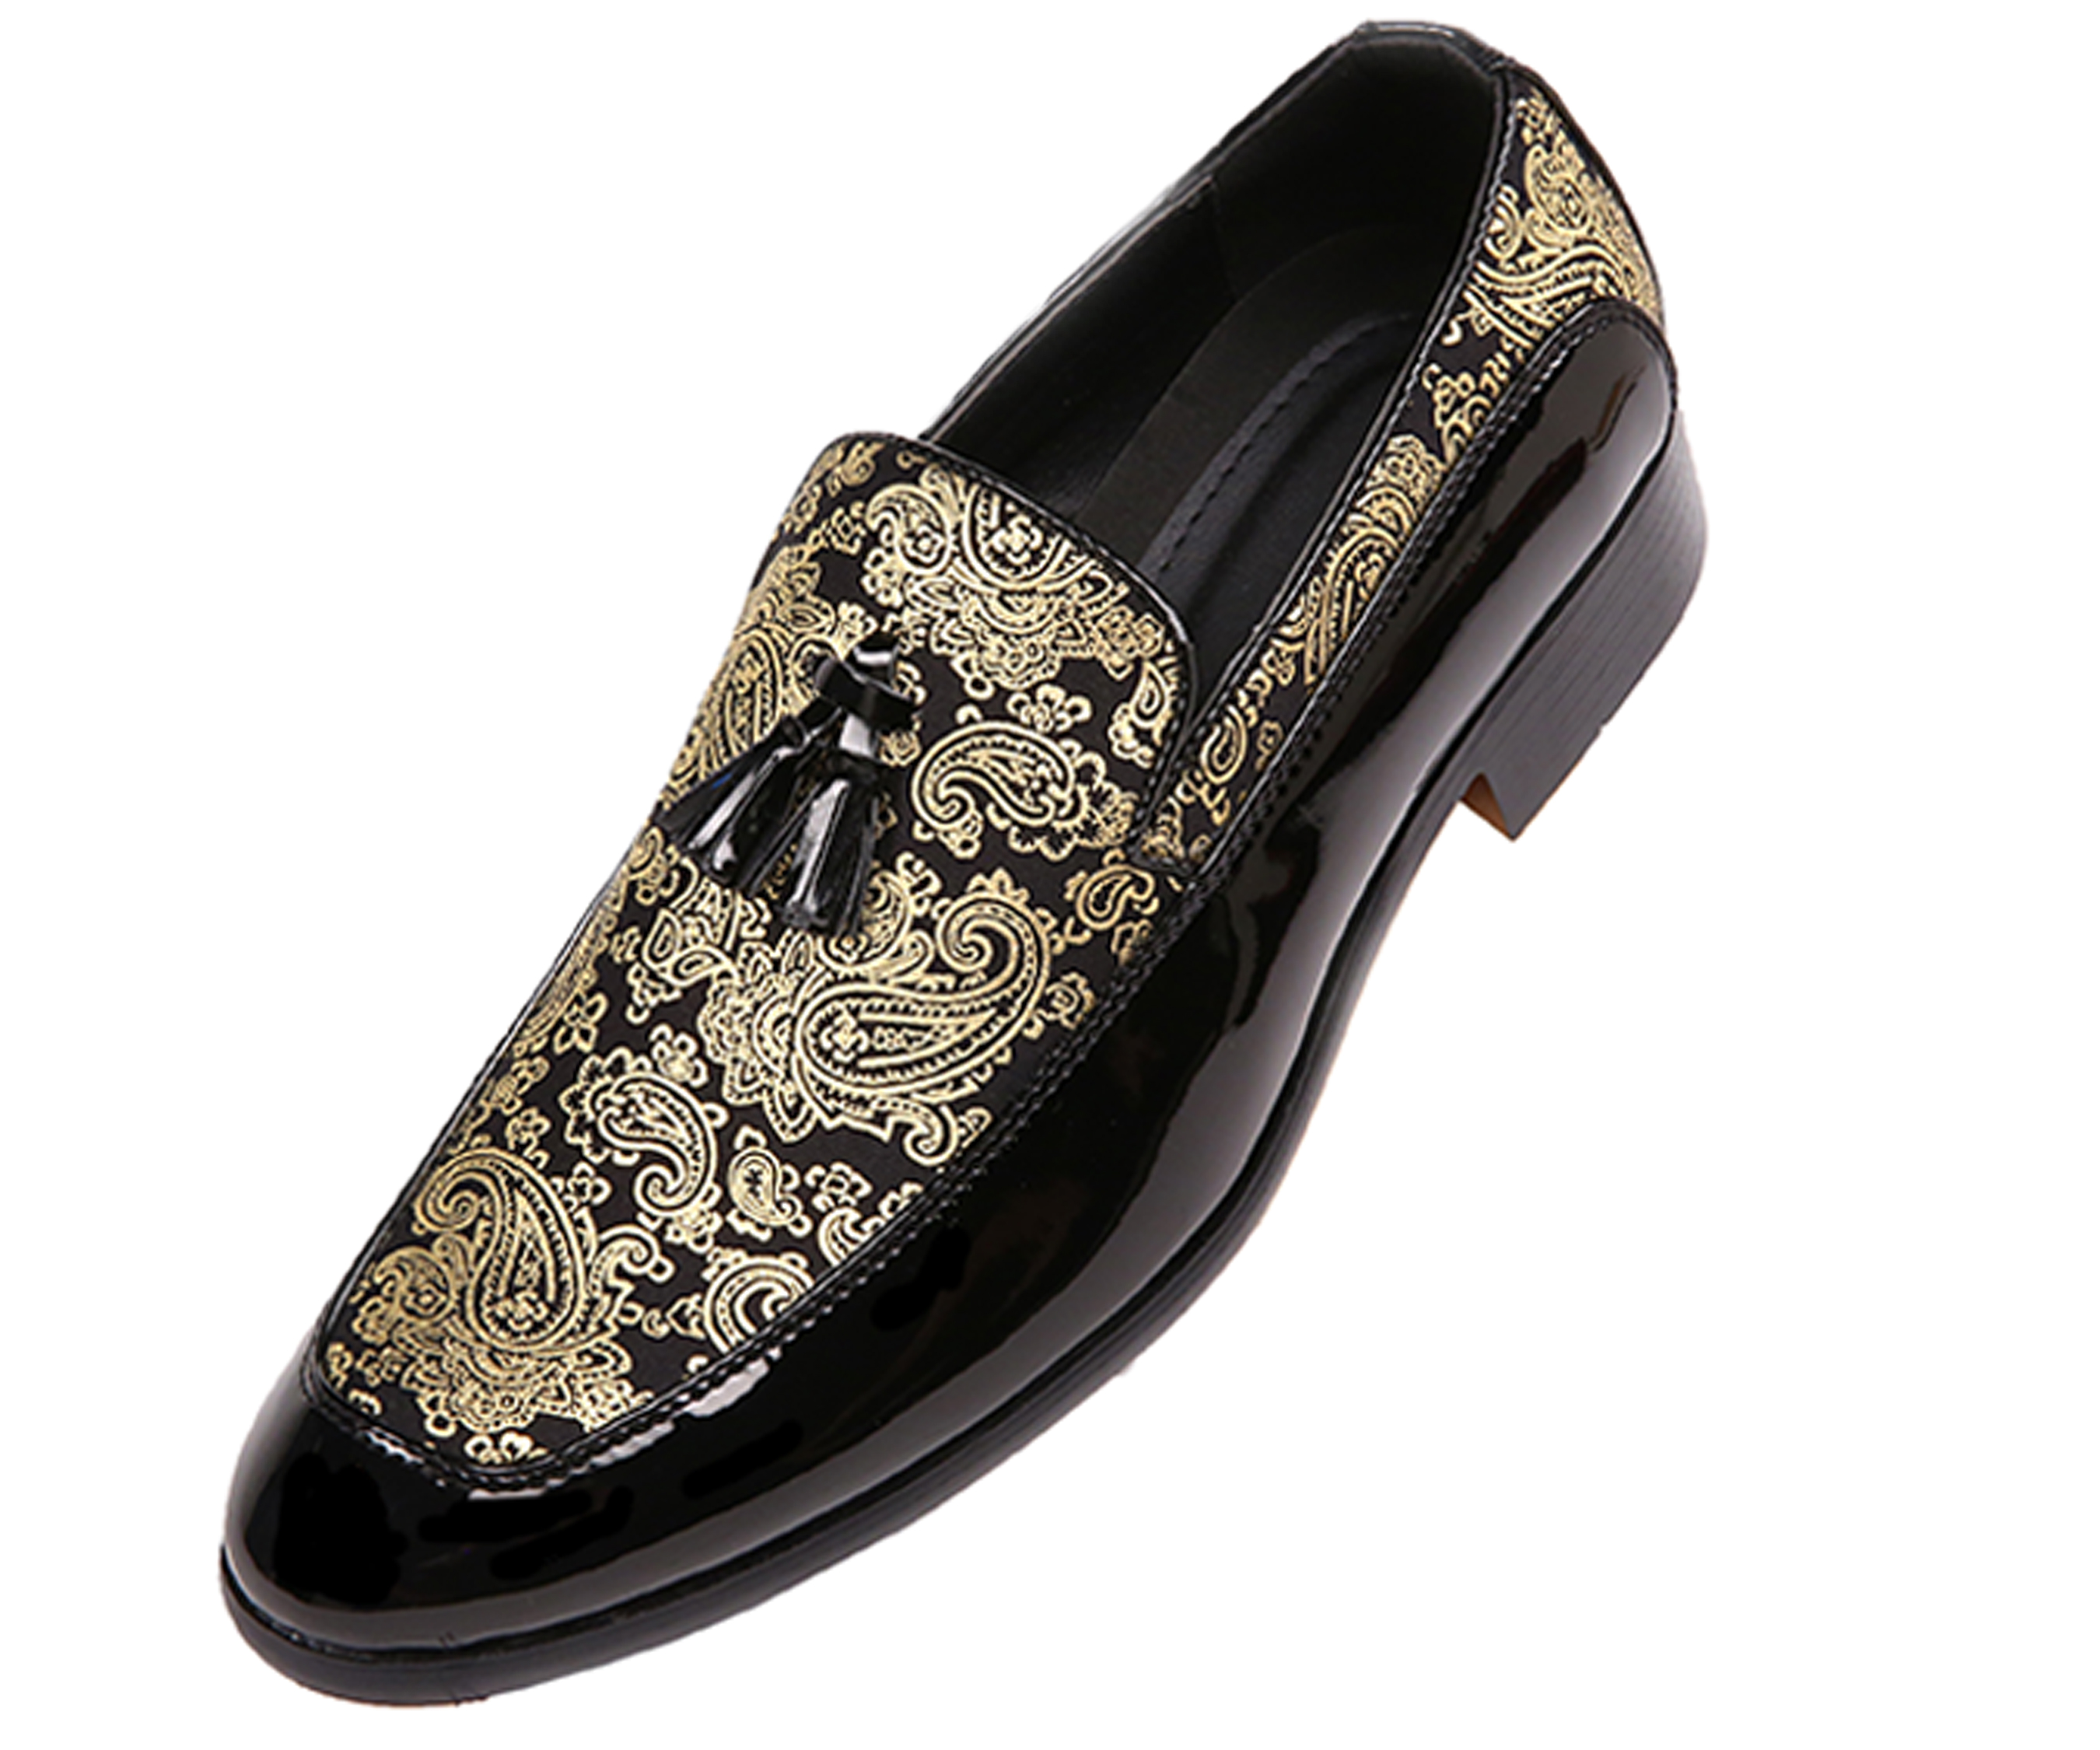 mens black dress shoes with gold